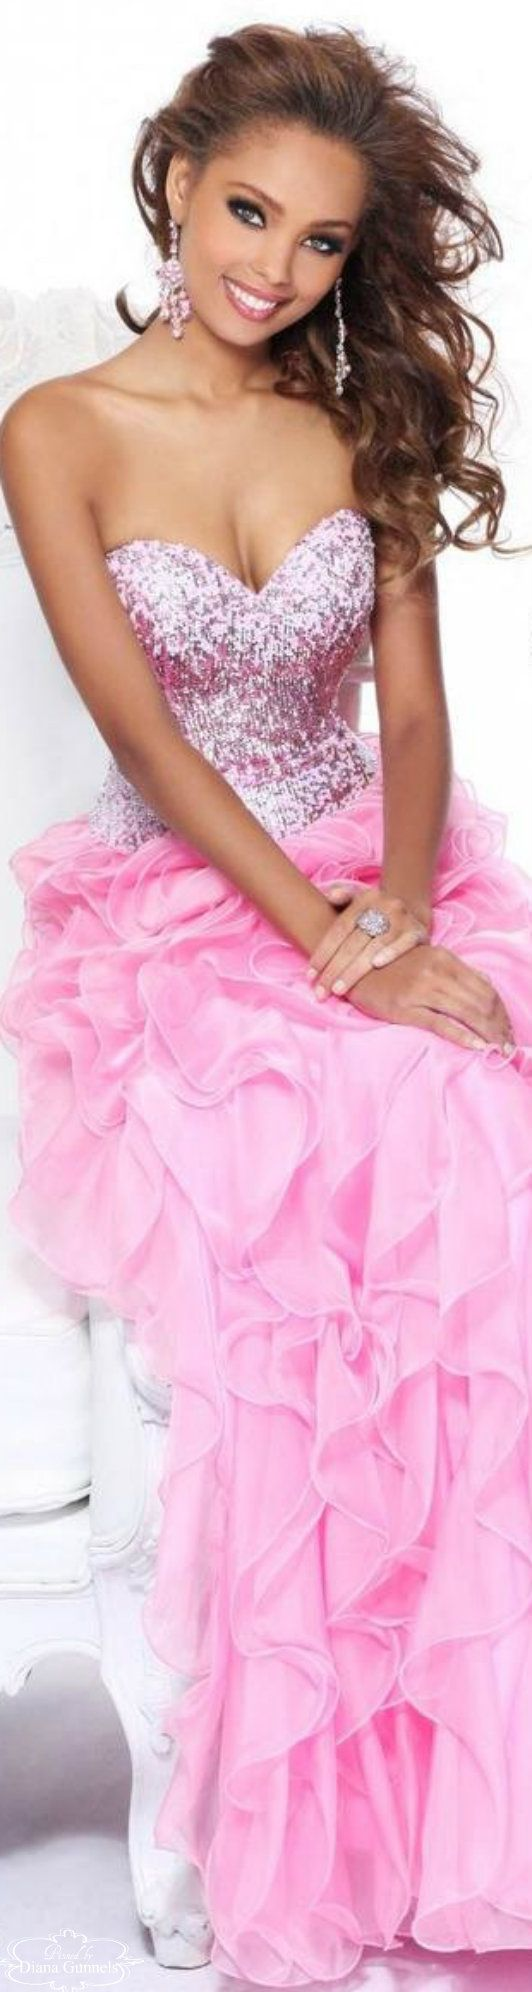 Sparkly pink ruffled gown so feminine                                                                                                                                                      Mehr